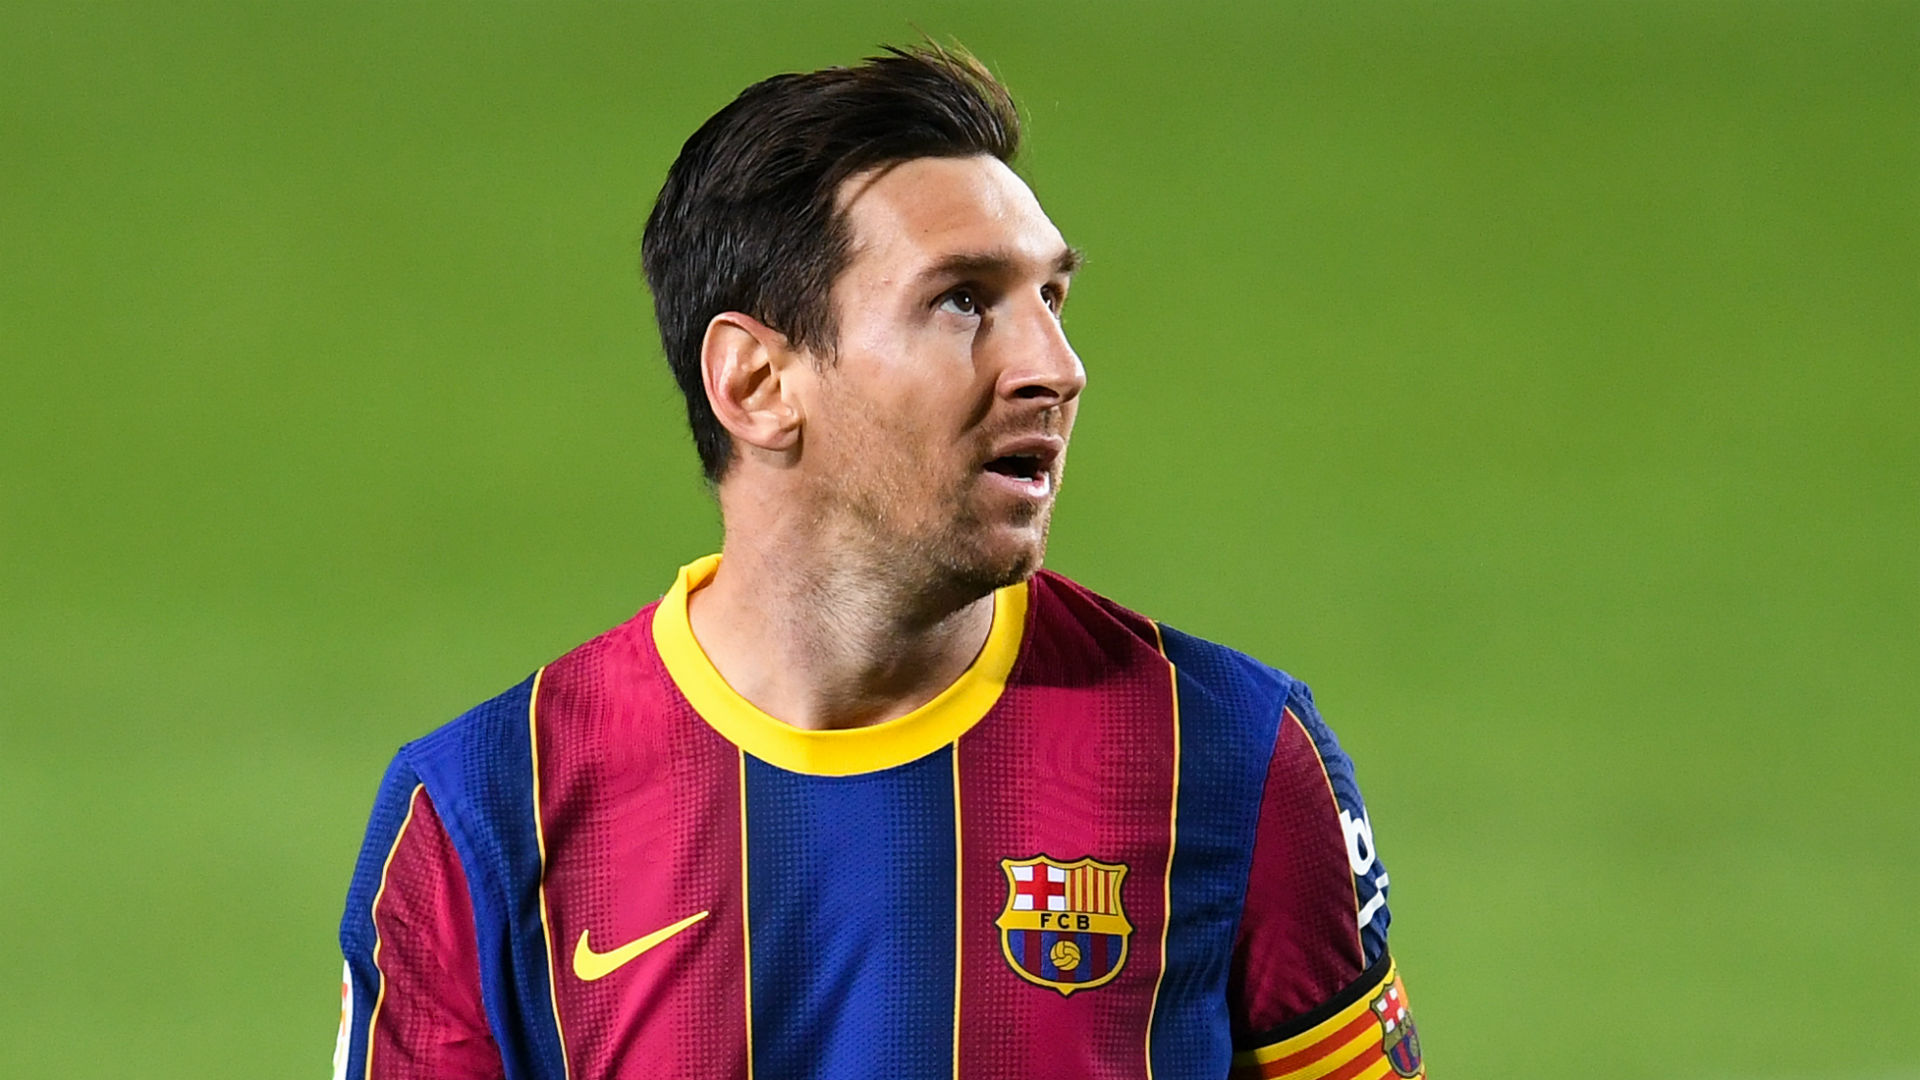 'Everything I did was in Barca's best interests' - Messi looks to put summer transfer saga behind him